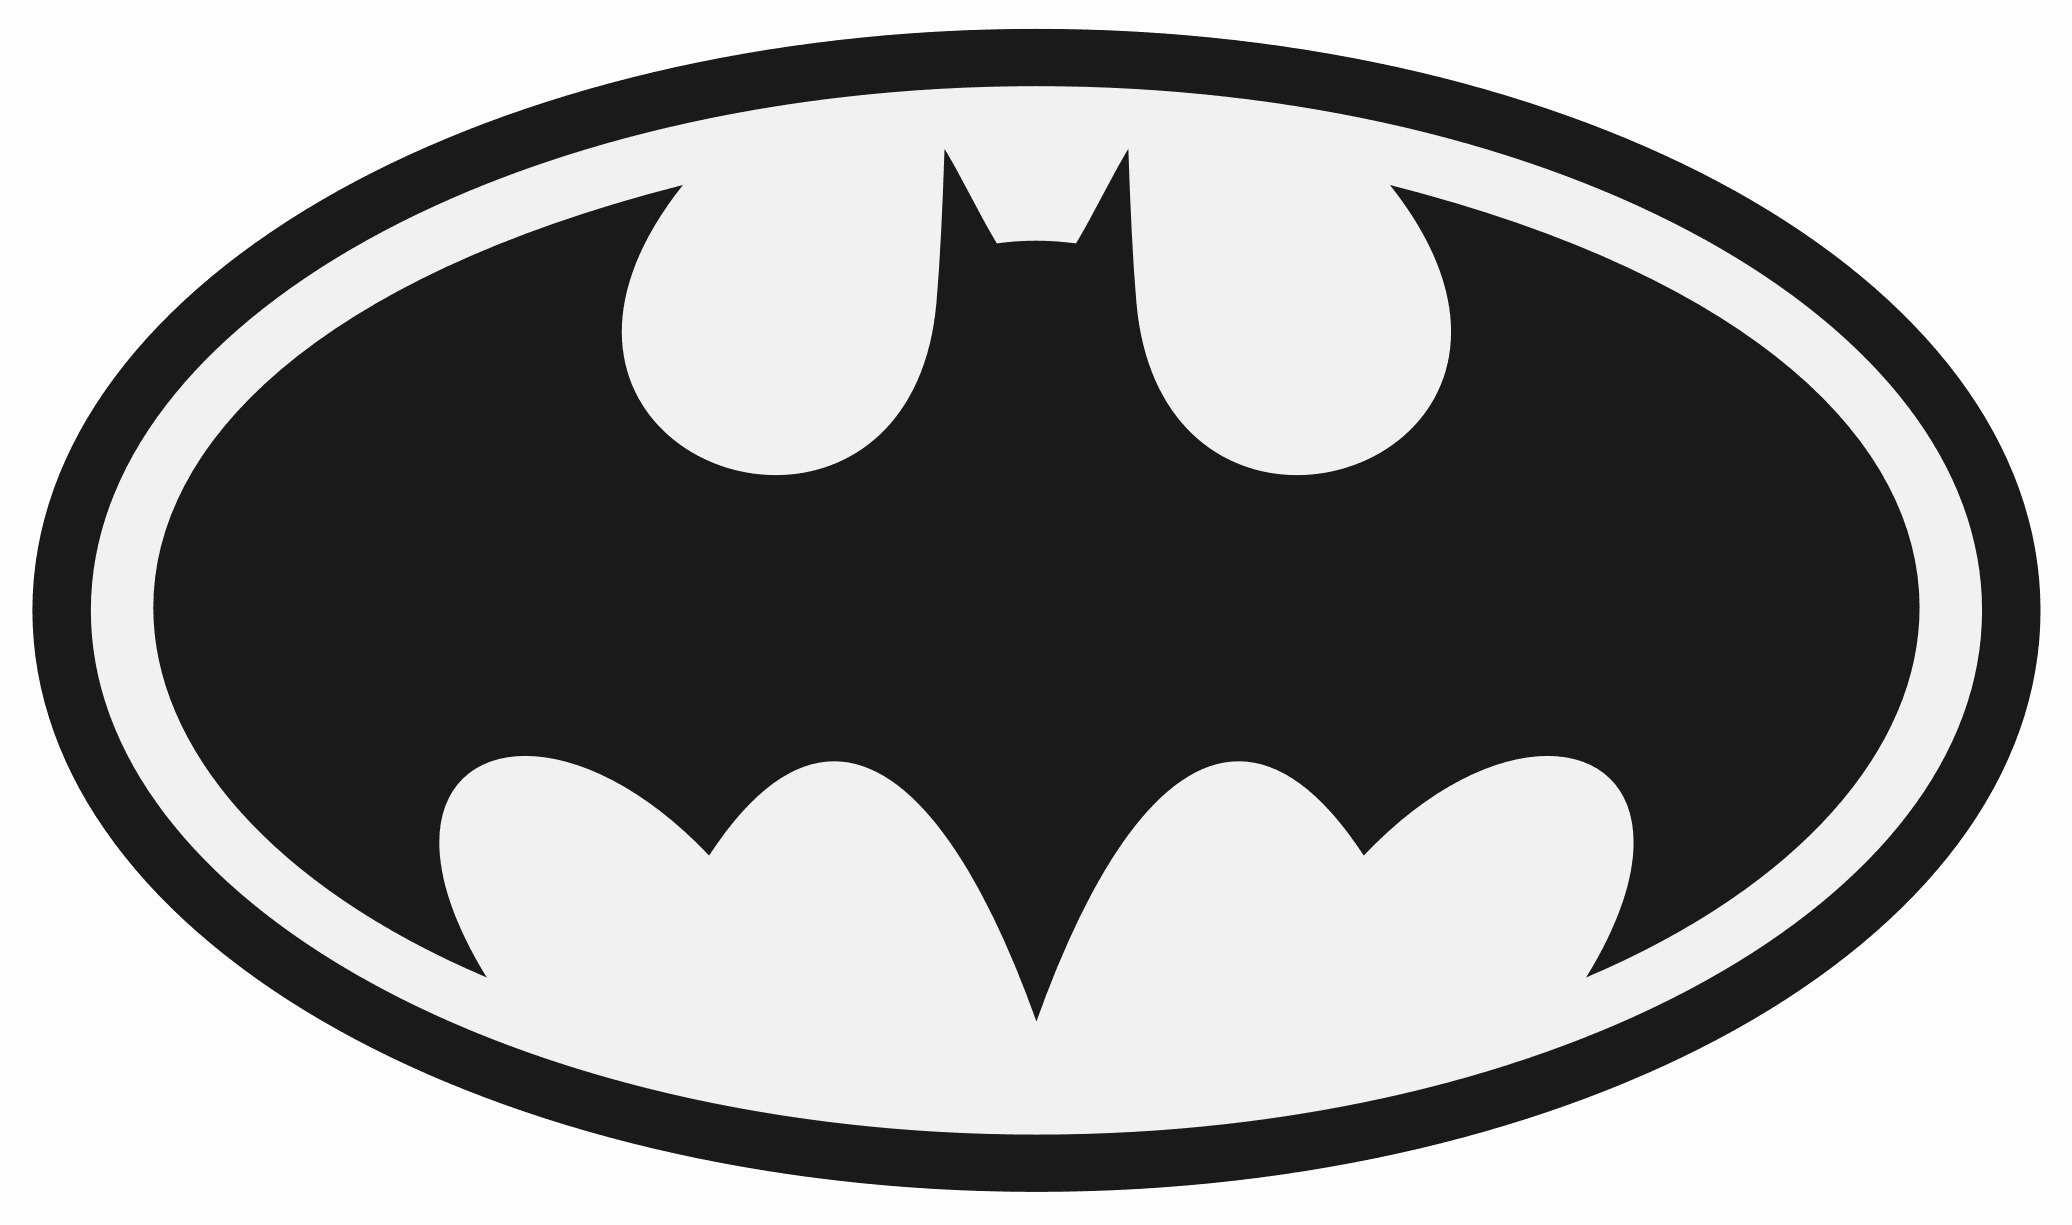 Batman Pumpkin Carving Stencils Lovely Batman Symbol Pumpkin Free Download Clip Art